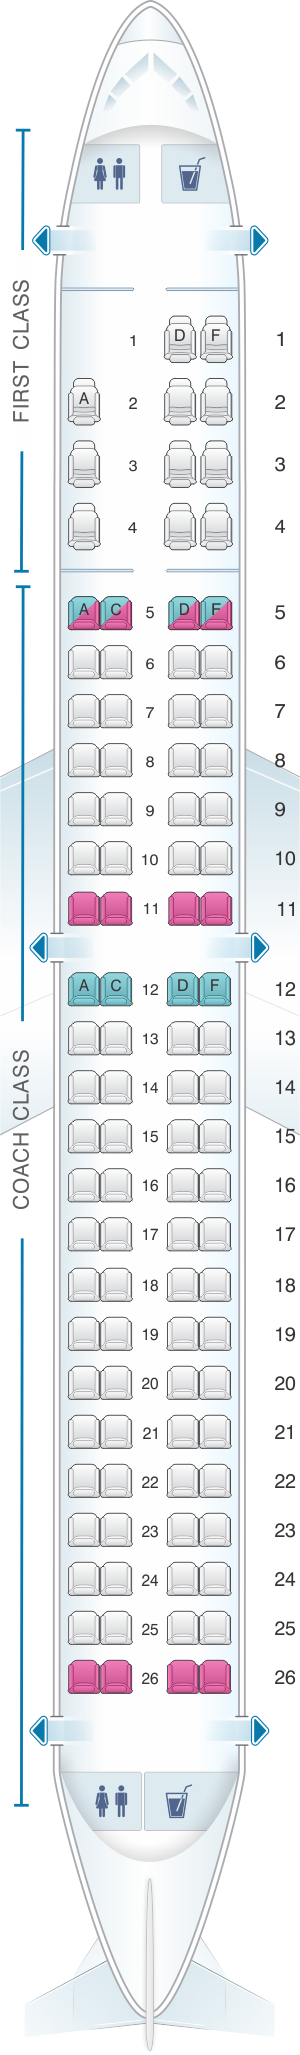 Seat map for US Airways Embraer 175